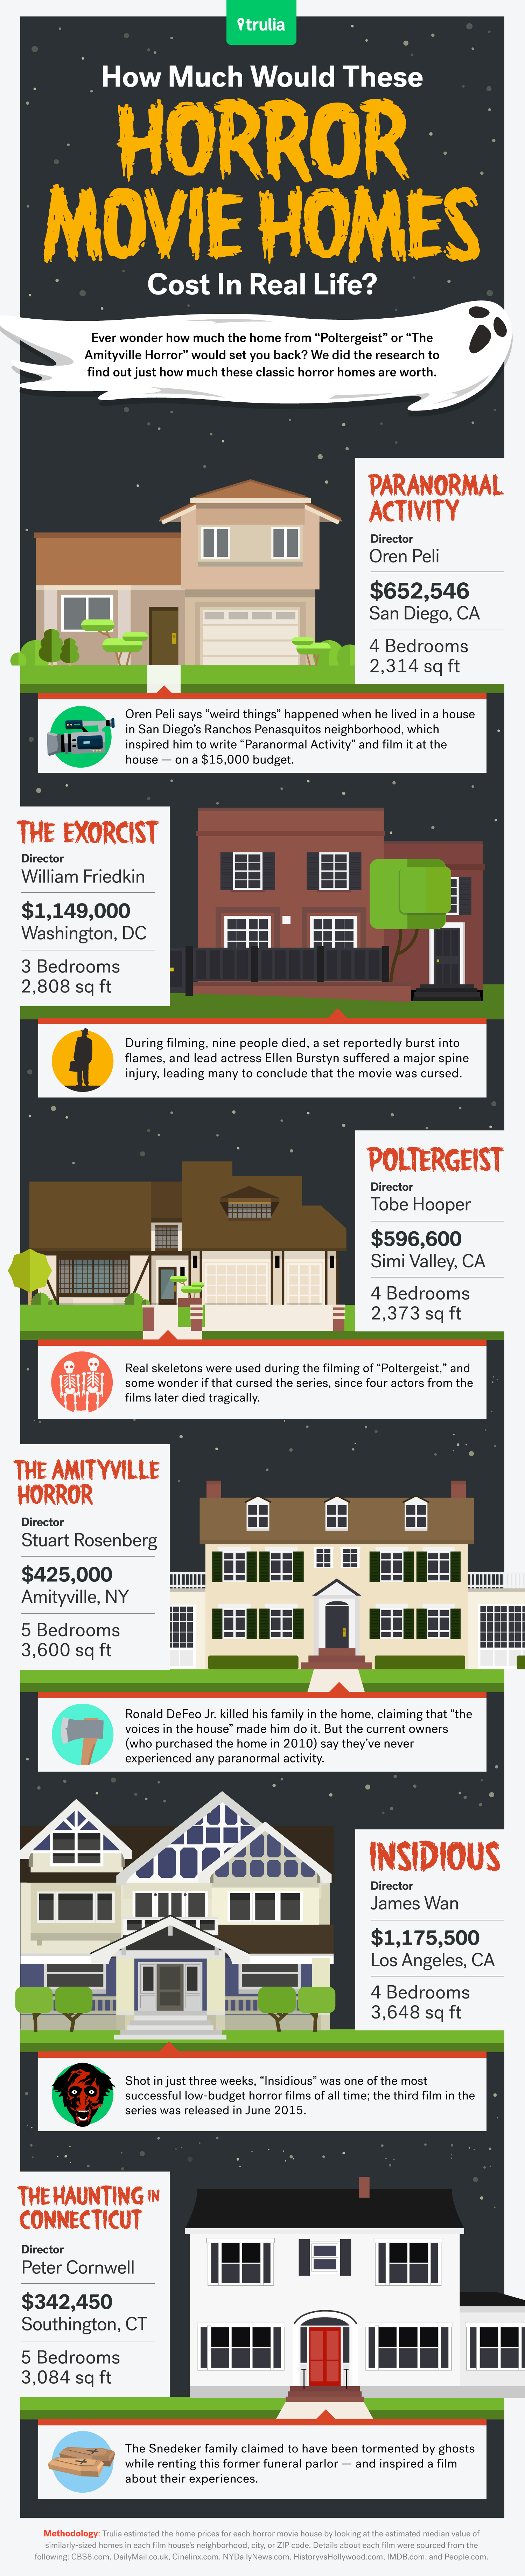 horror movie homes cost in real life